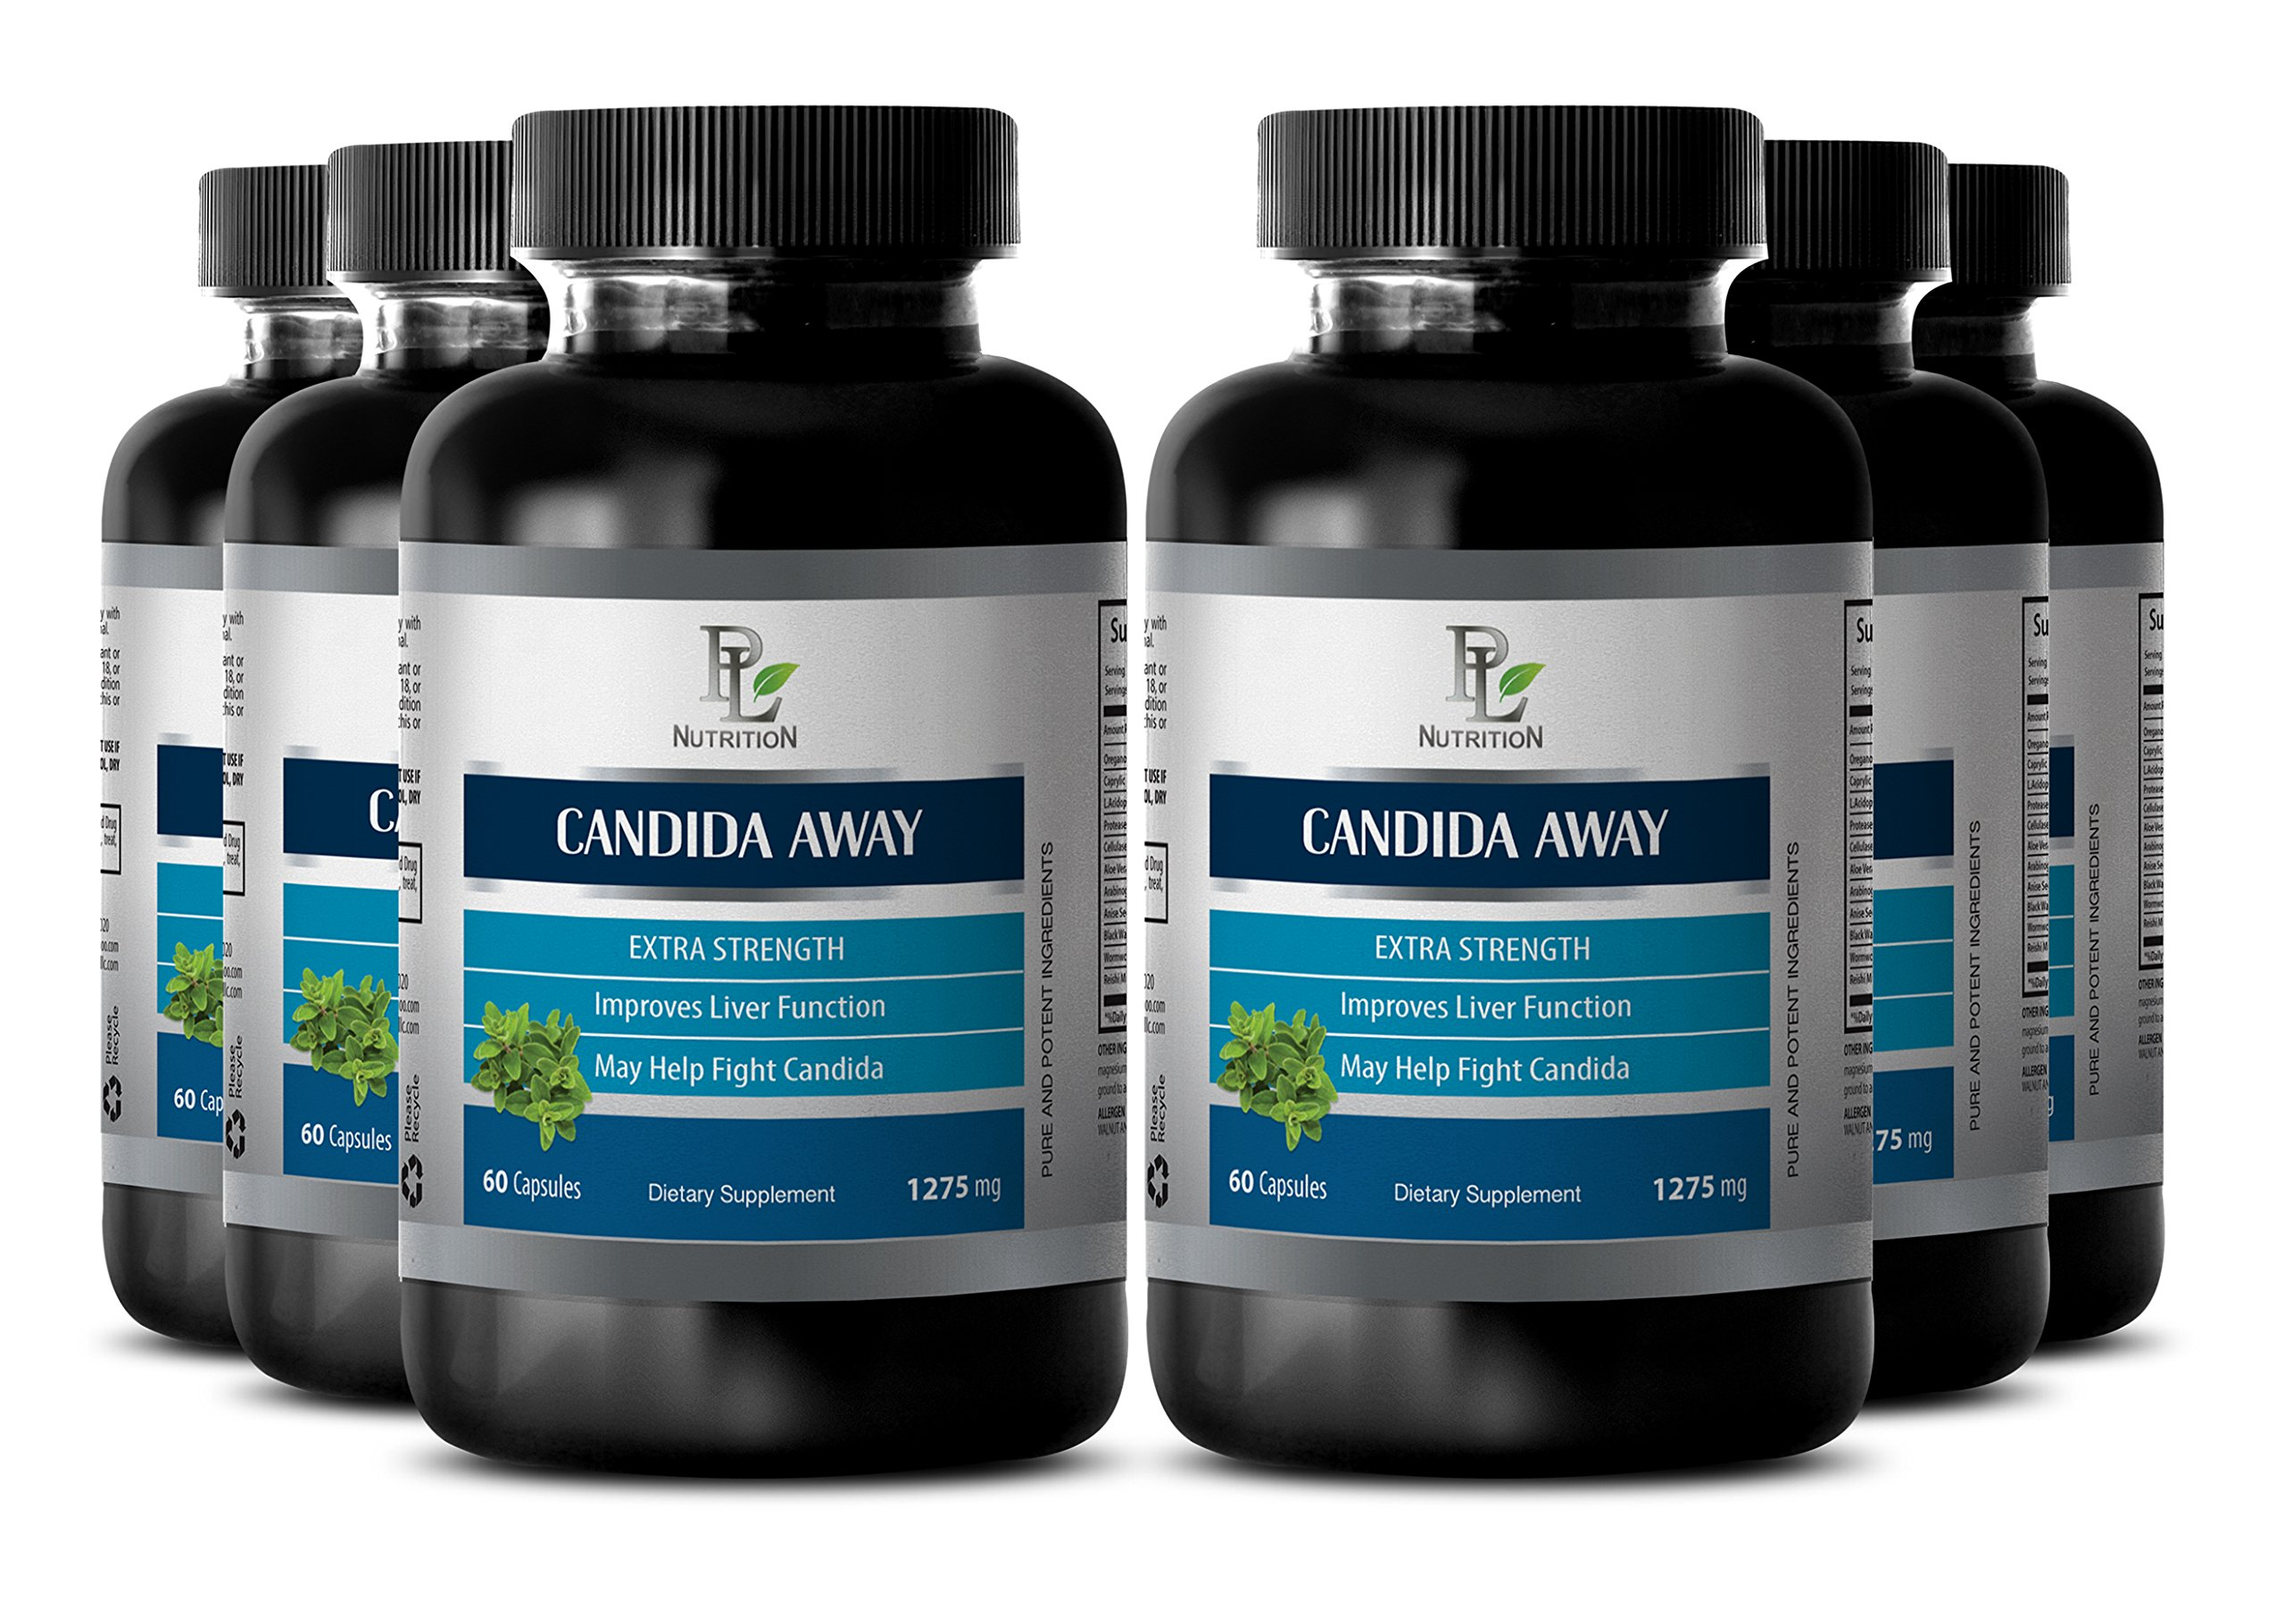 Natural detox herbs - CANDIDA AWAY Extra Strength - Candida pills for women - 6 Bottles 360 Capsules by PL NUTRITION